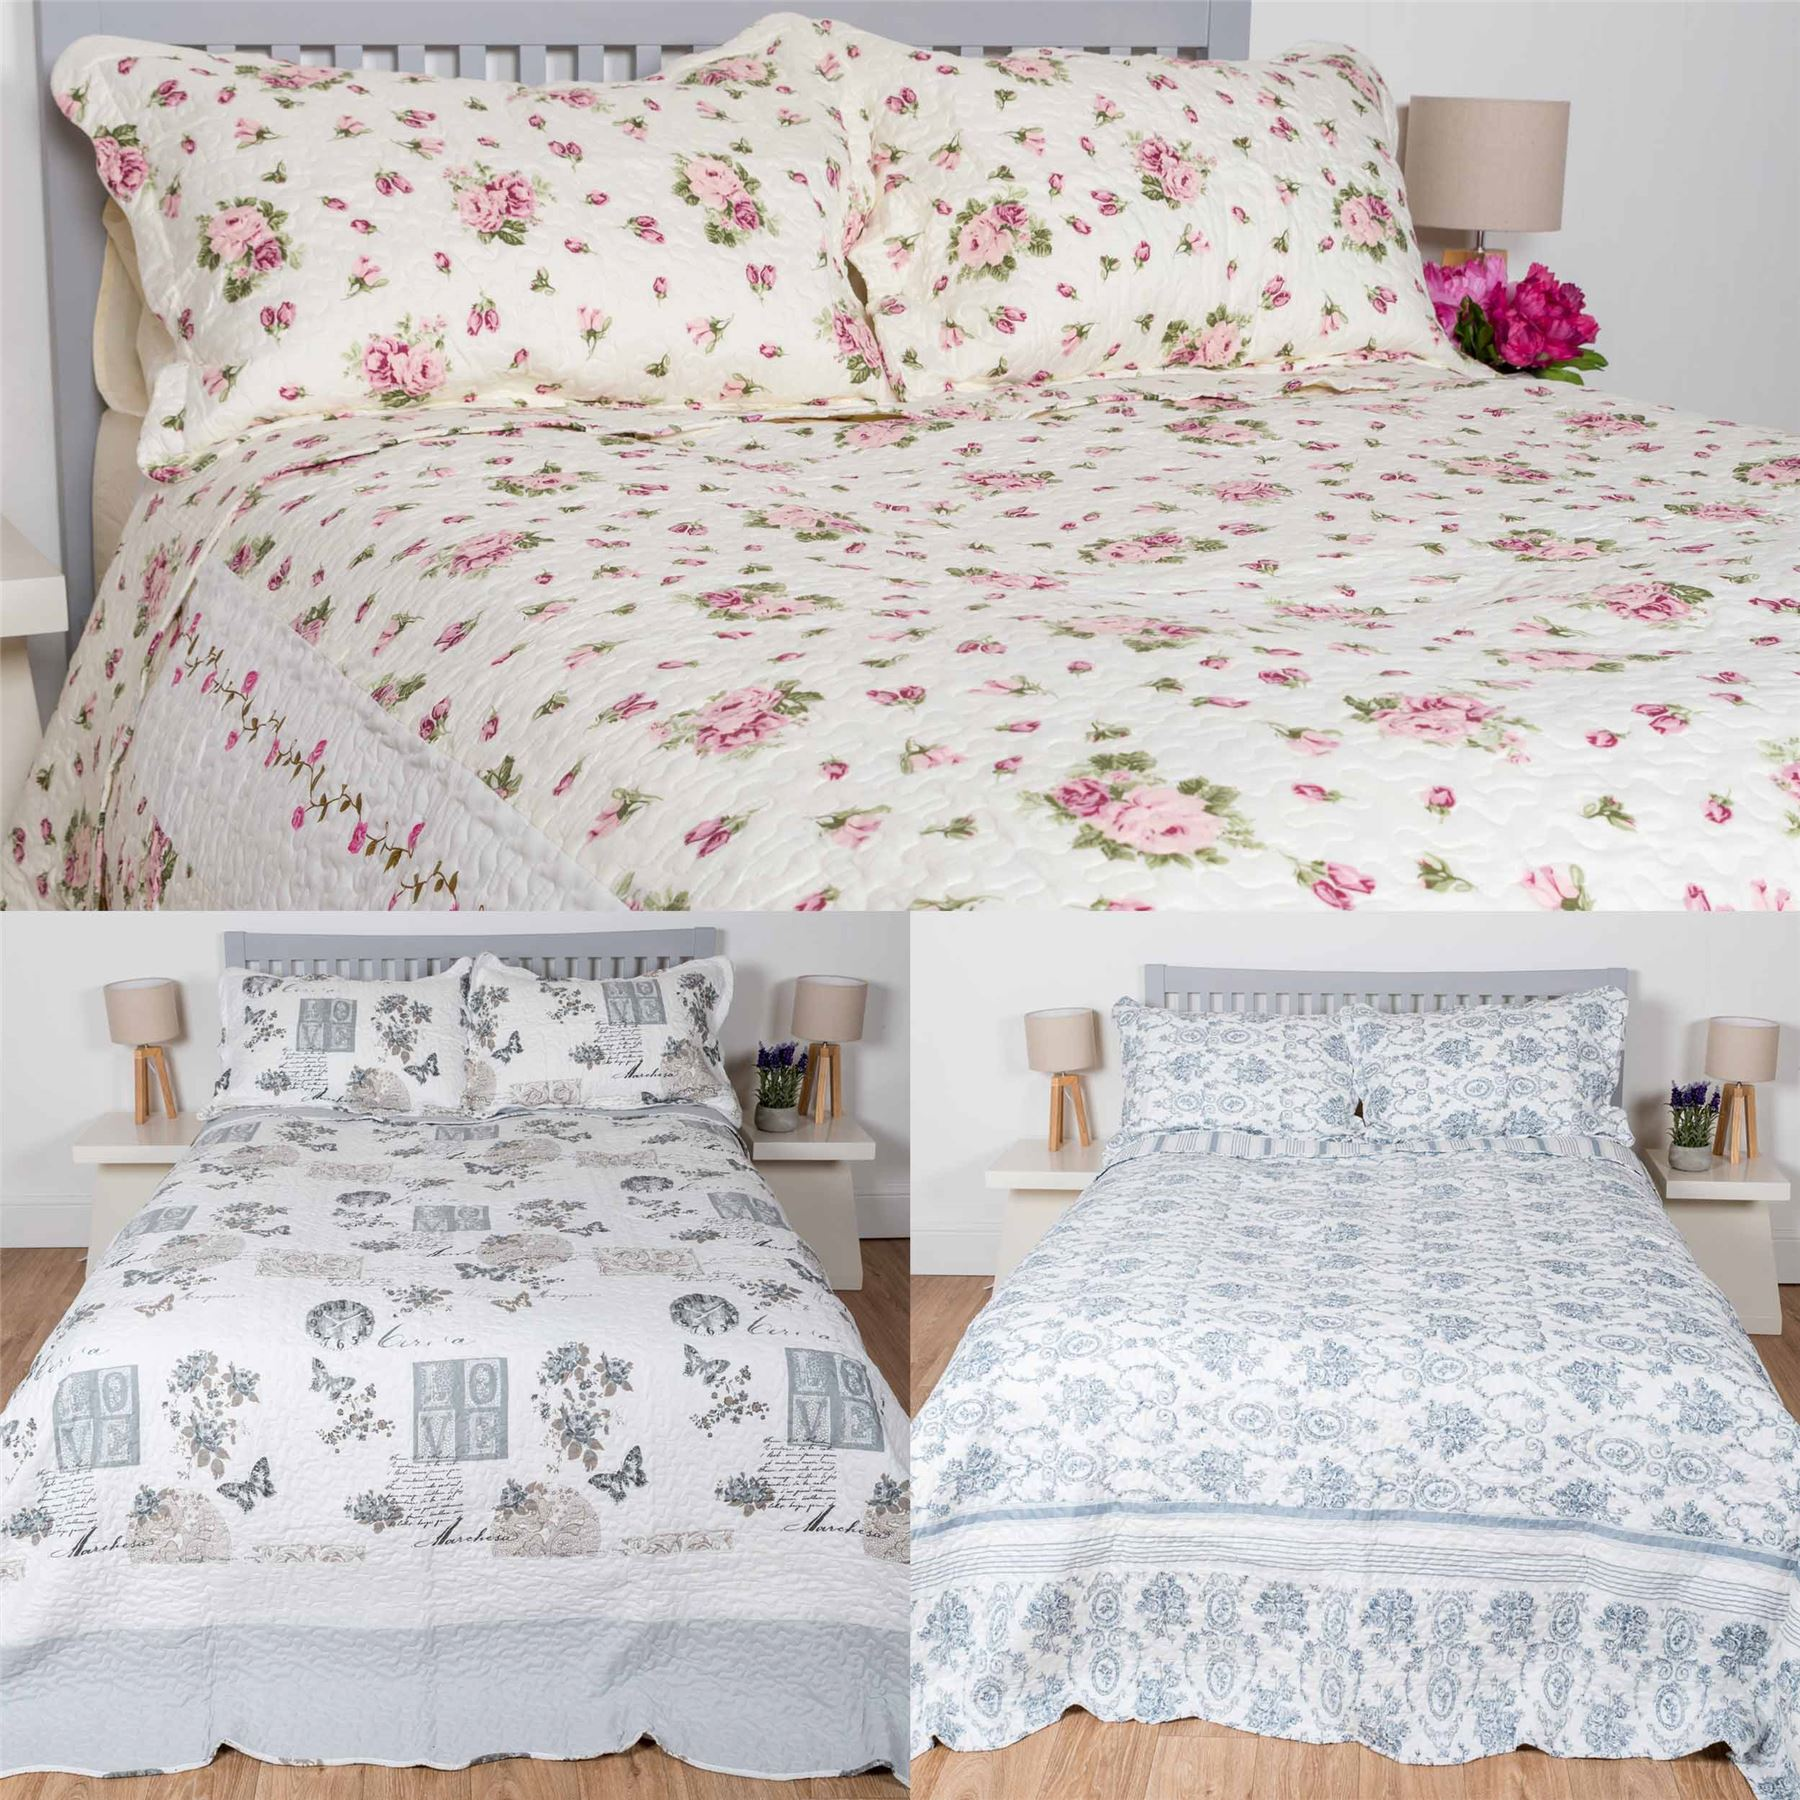 Bedspread Patchwork Printed Quilted Bed Throw Vintage Runner With Pillow Shams